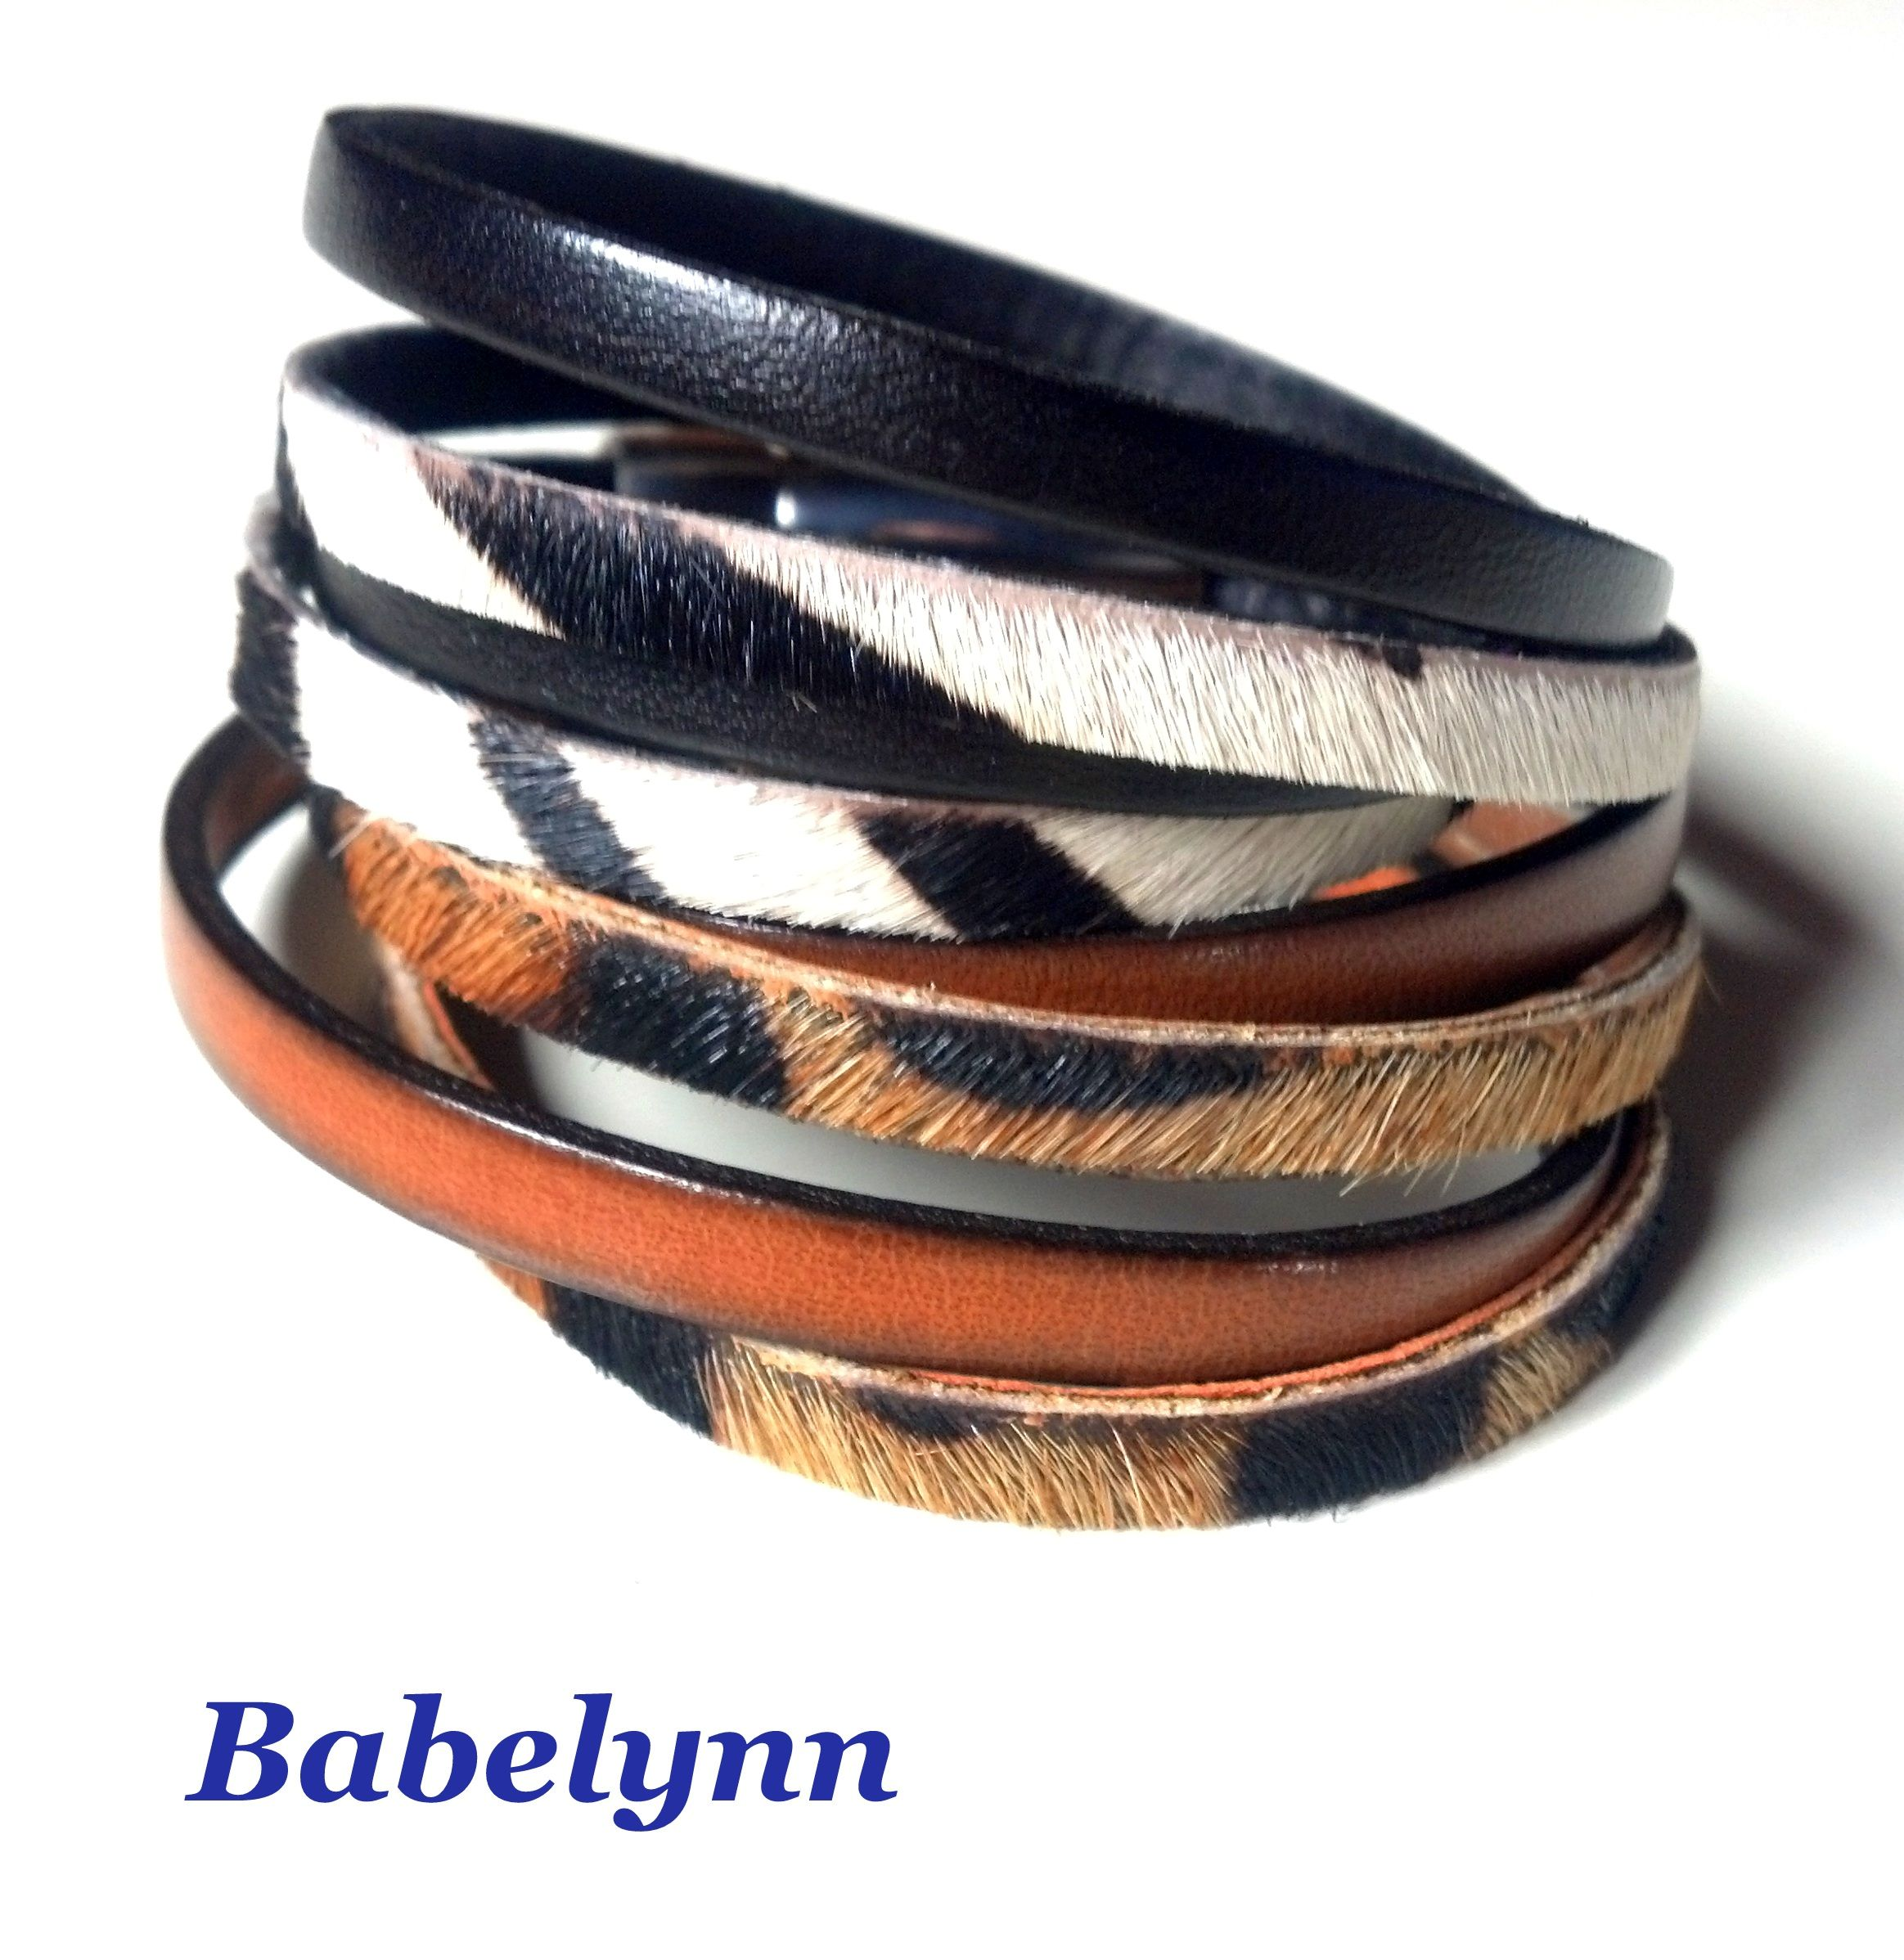 9366099c9e98 Pulseras de cuero y piel de potro con estampado animal. Hair on leather  bracelets with